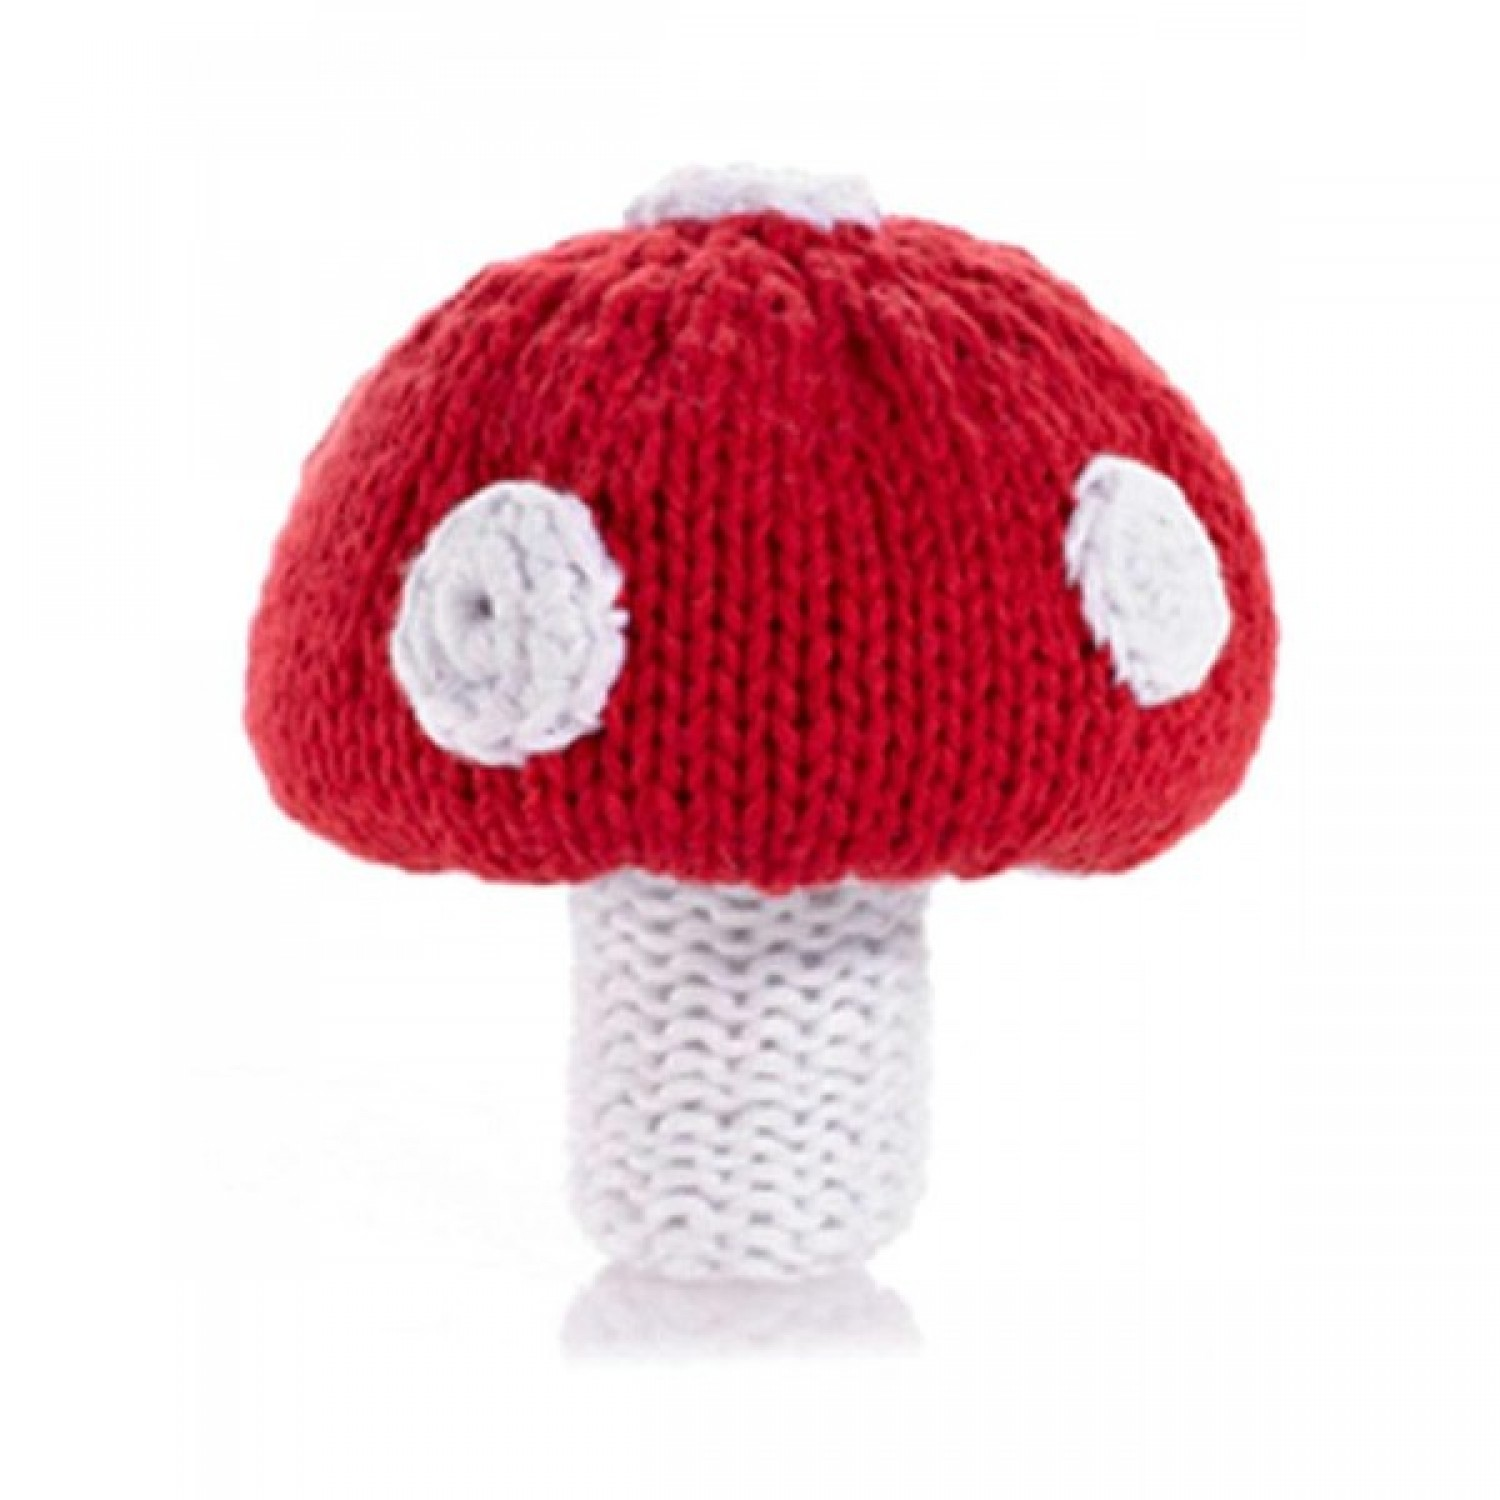 Pebble Vegetable Rattle – Toadstool